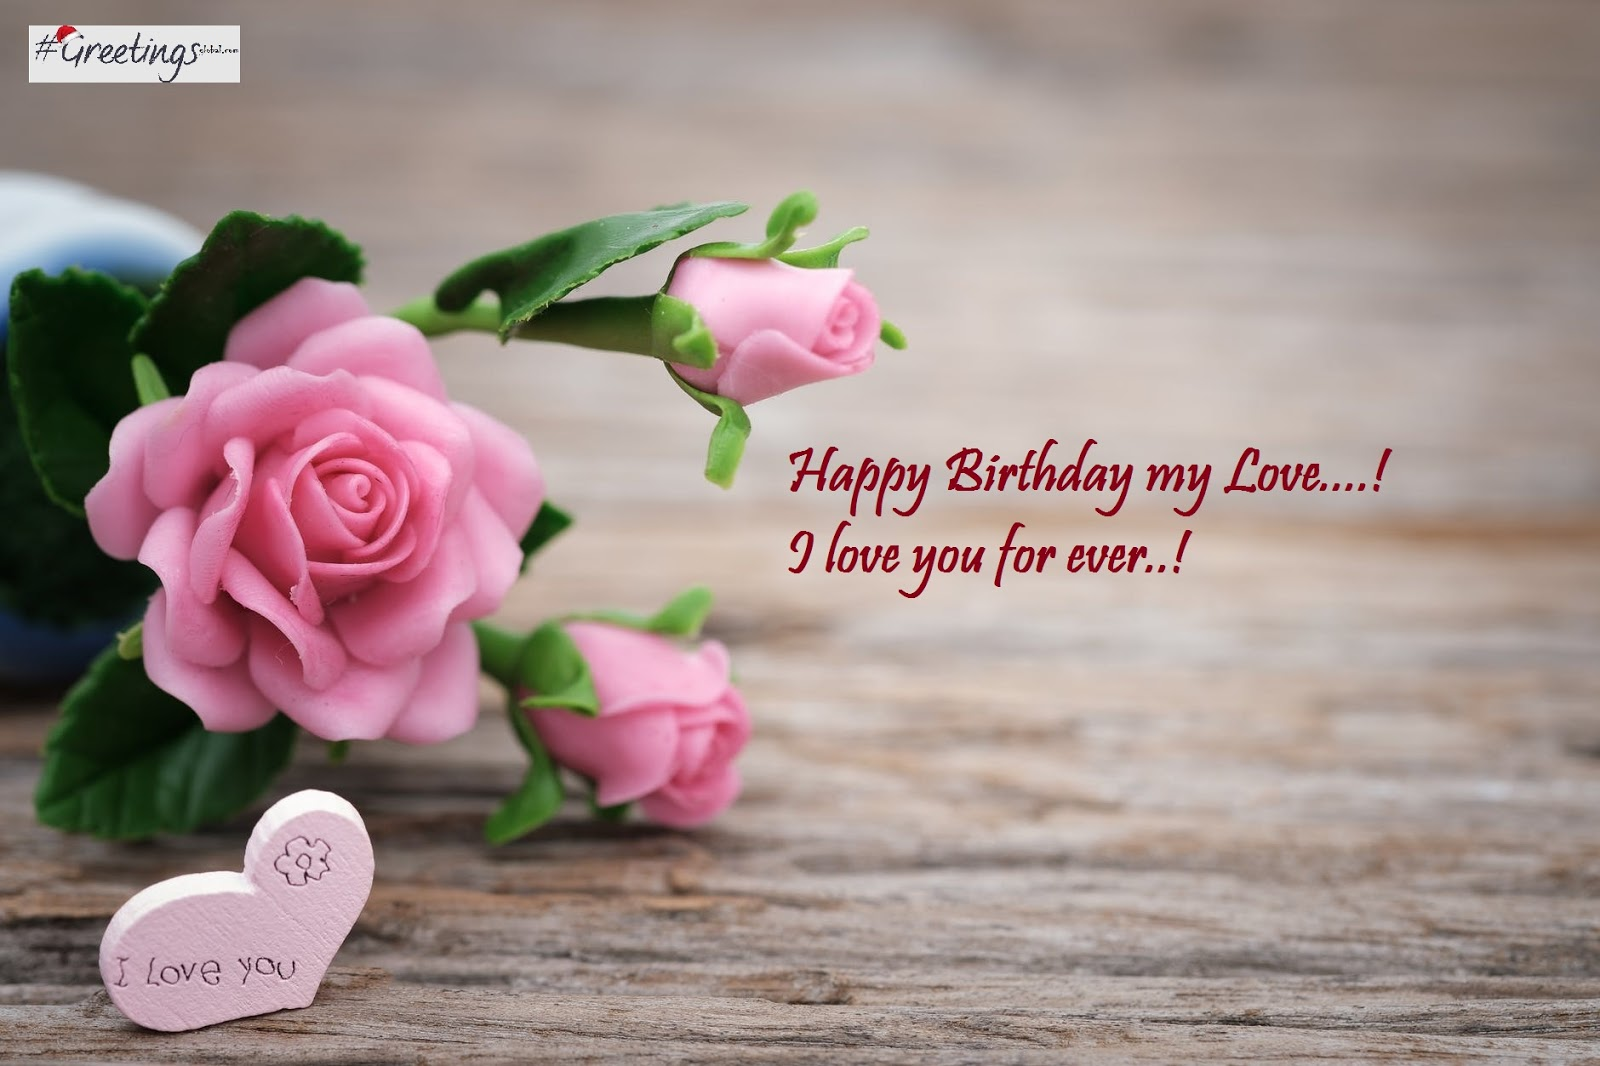 Cutest Birthday Wishes To Impress Your Girl Friend Greetings From